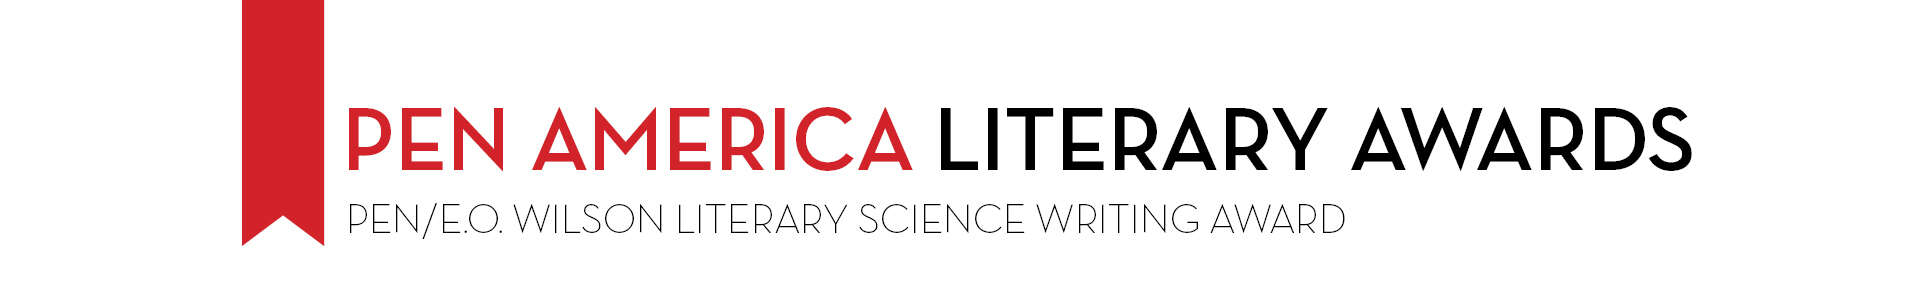 PEN America Literary Awards PEN/E.O. Wilson Literary Science Writing Award